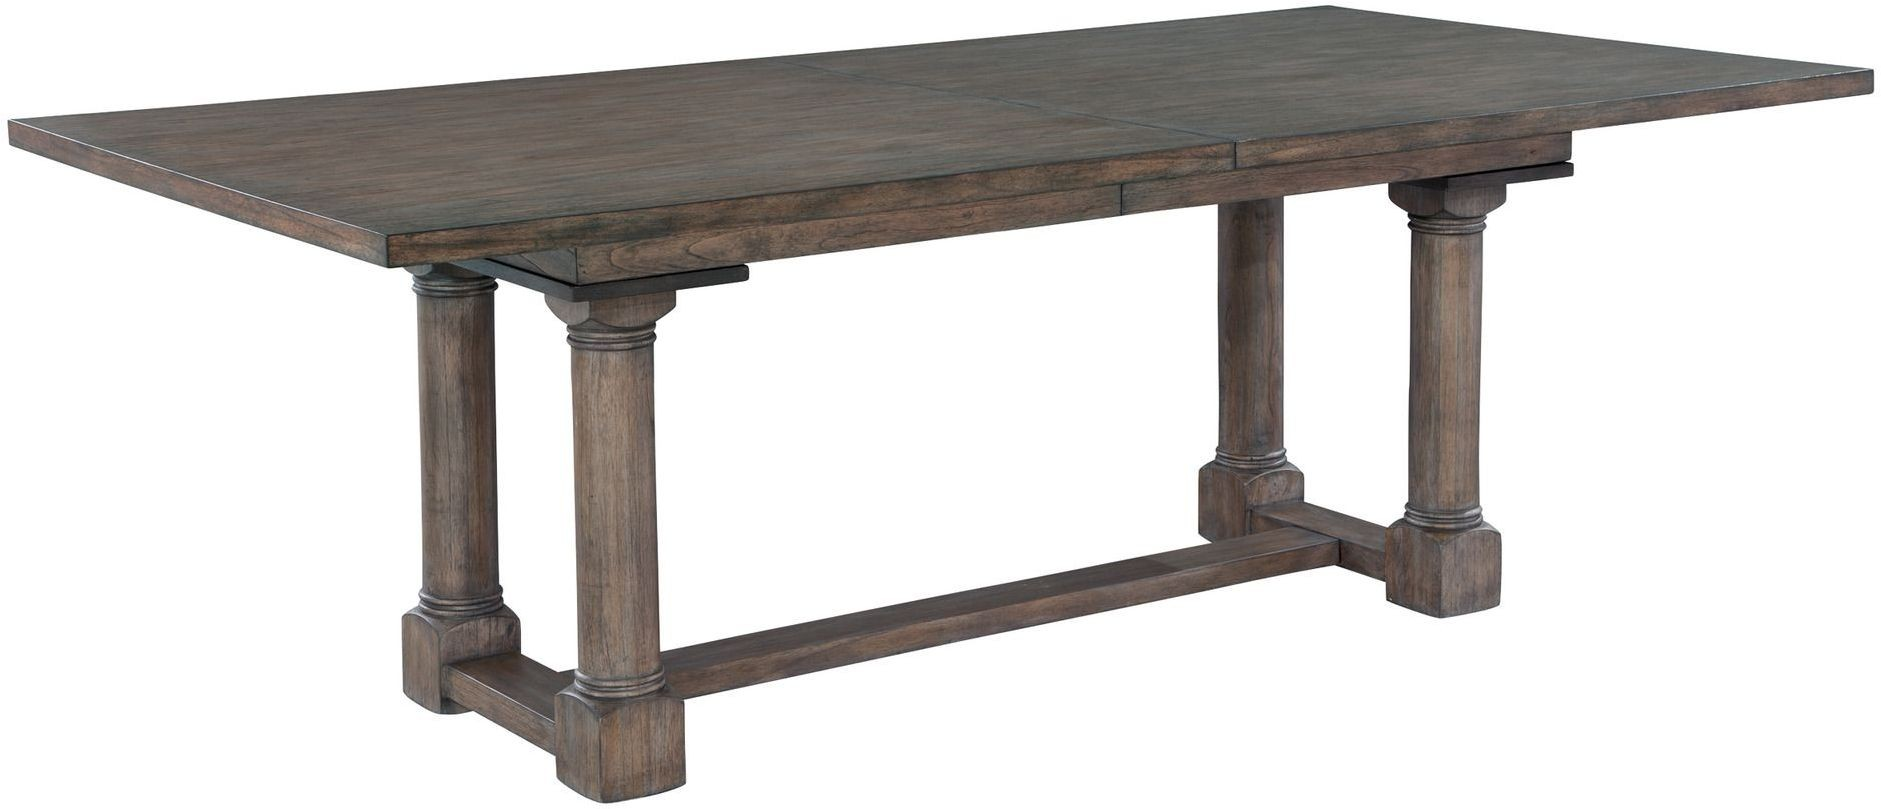 lincoln park gray trestle extendable dining table from hekman furniture coleman furniture. Black Bedroom Furniture Sets. Home Design Ideas